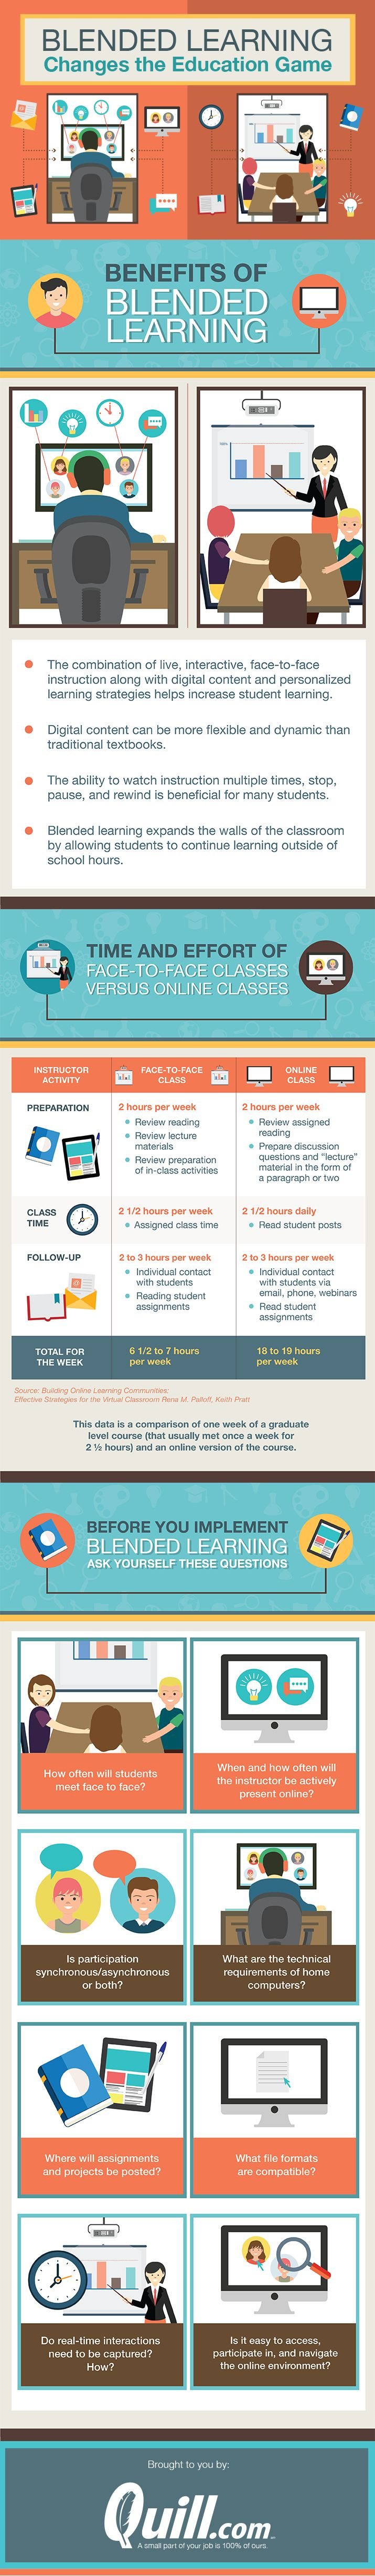 6 Common Misconceptions About Blended Learning